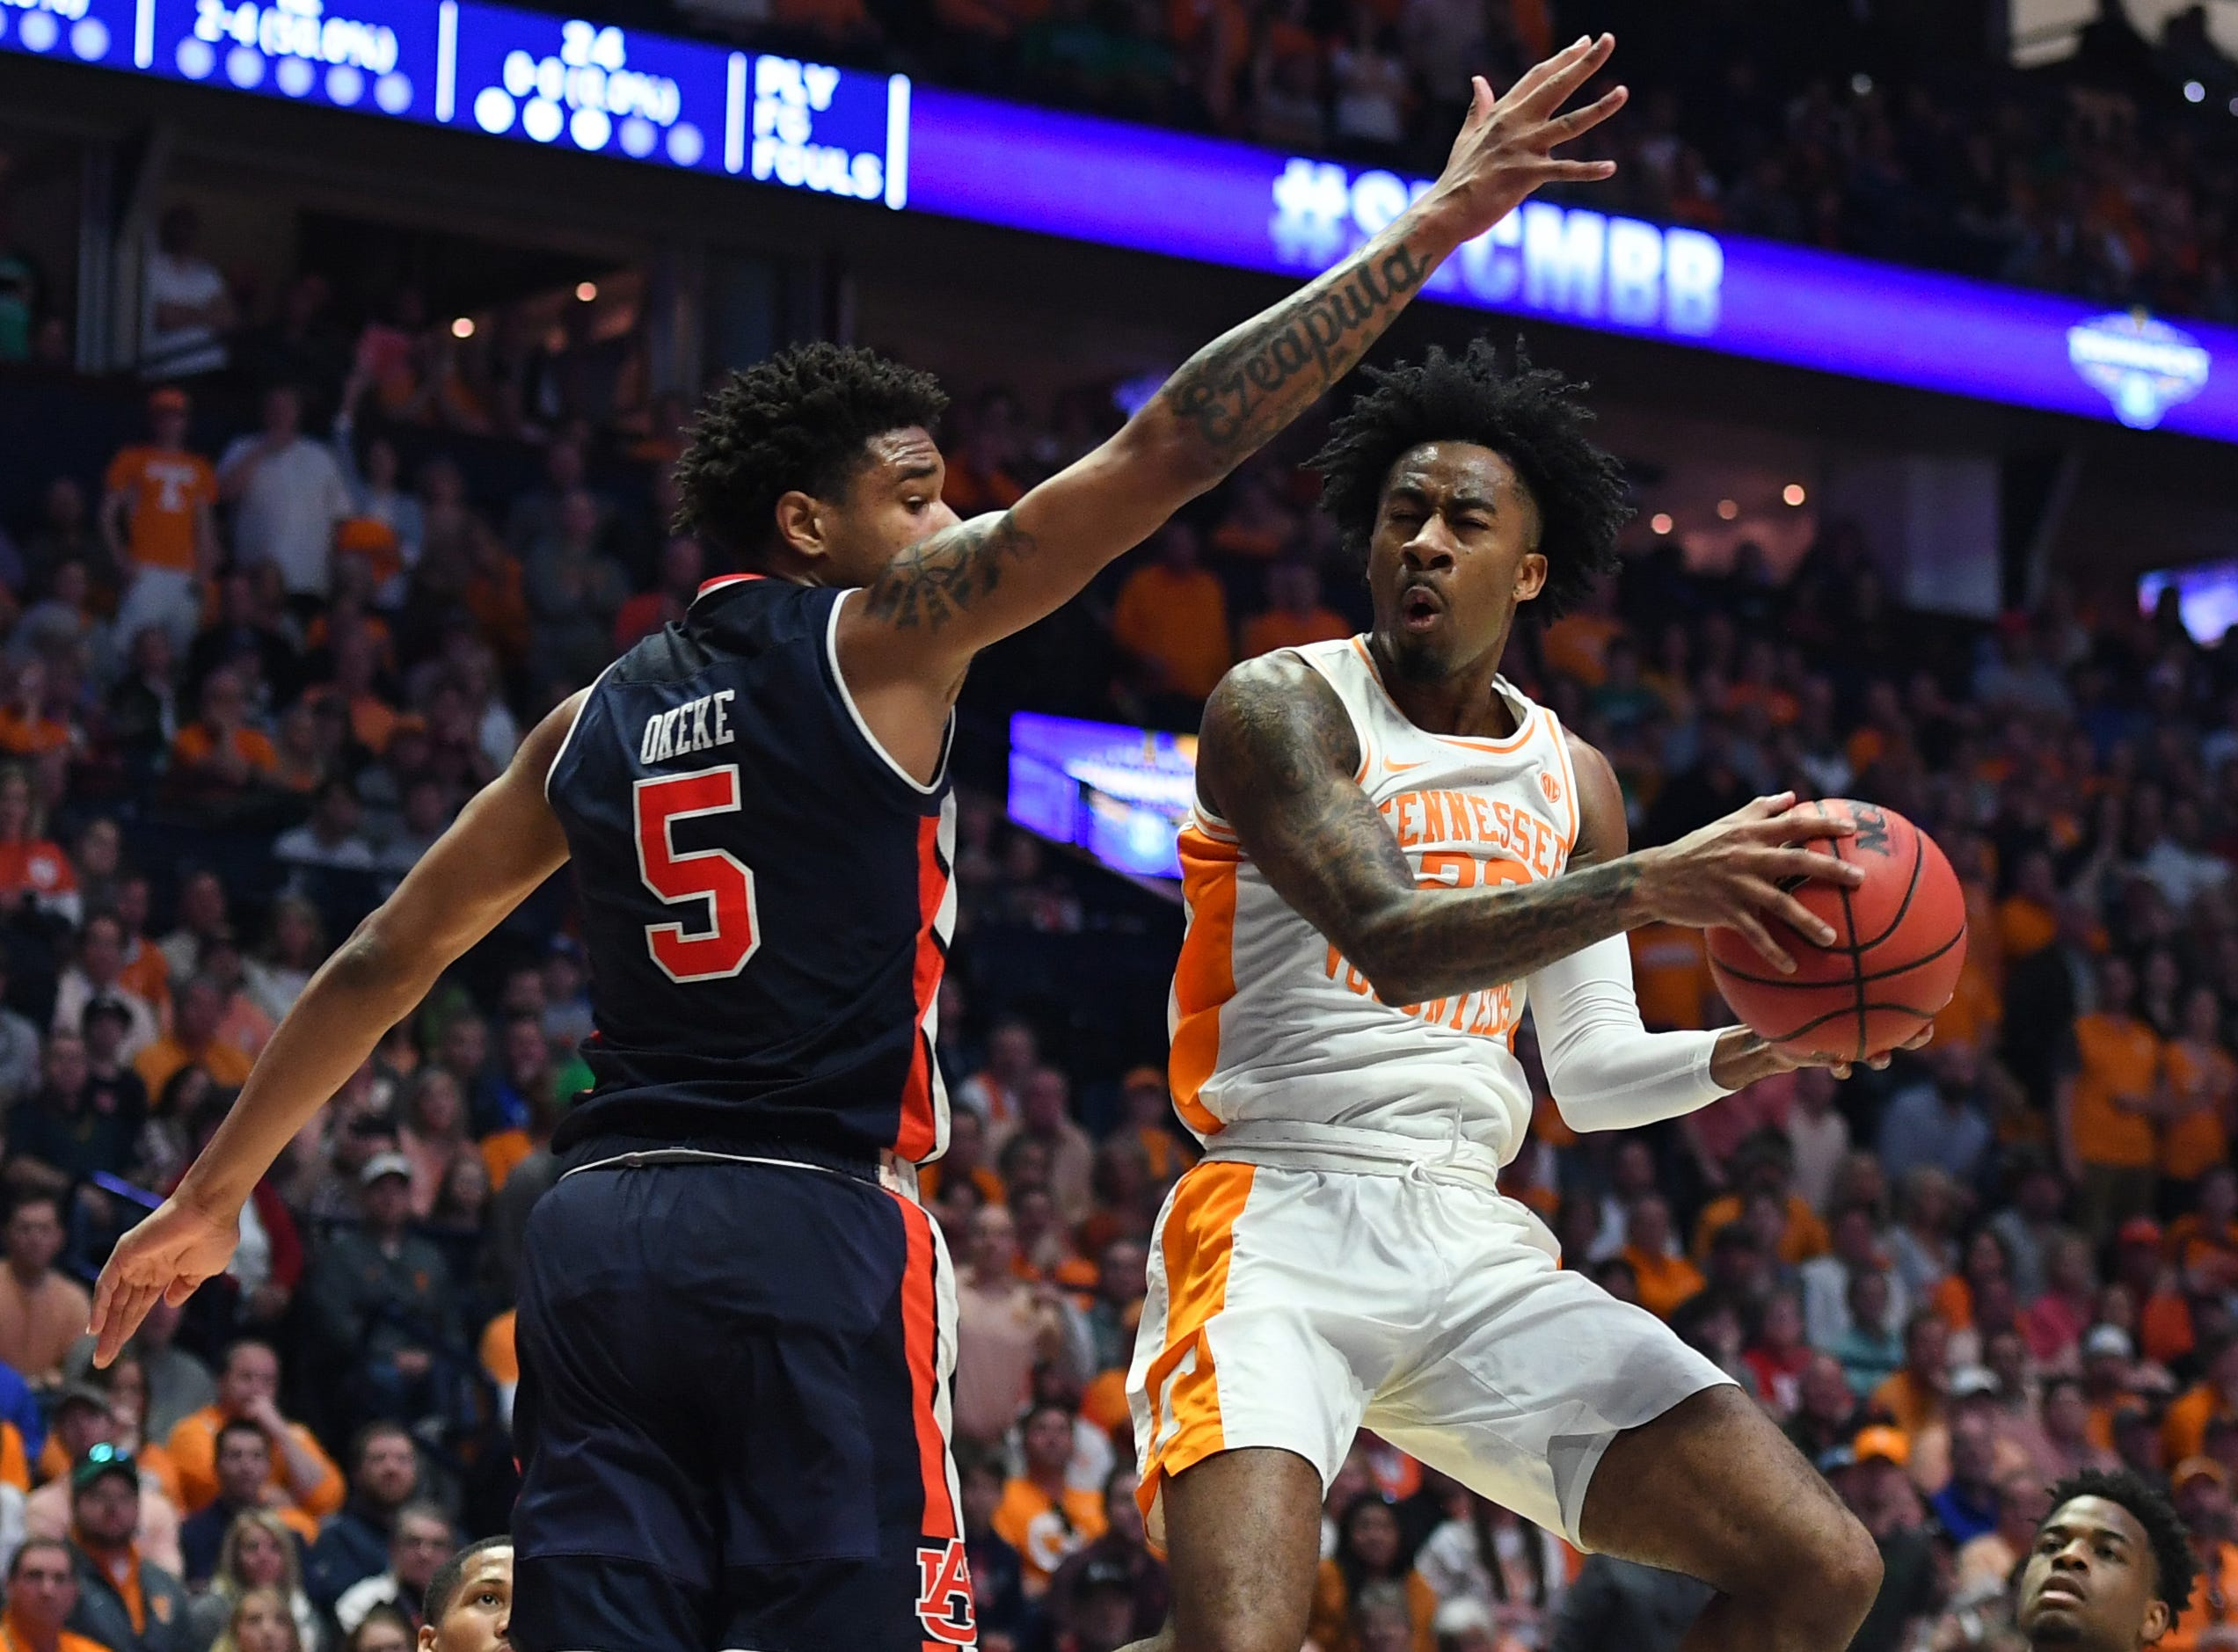 Mar 17, 2019; Nashville, TN, USA; Tennessee Volunteers guard Jordan Bowden (23) makes a shot around Auburn Tigers forward Chuma Okeke (5) to end the first half in the SEC conference tournament championship game at Bridgestone Arena. Mandatory Credit: Christopher Hanewinckel-USA TODAY Sports